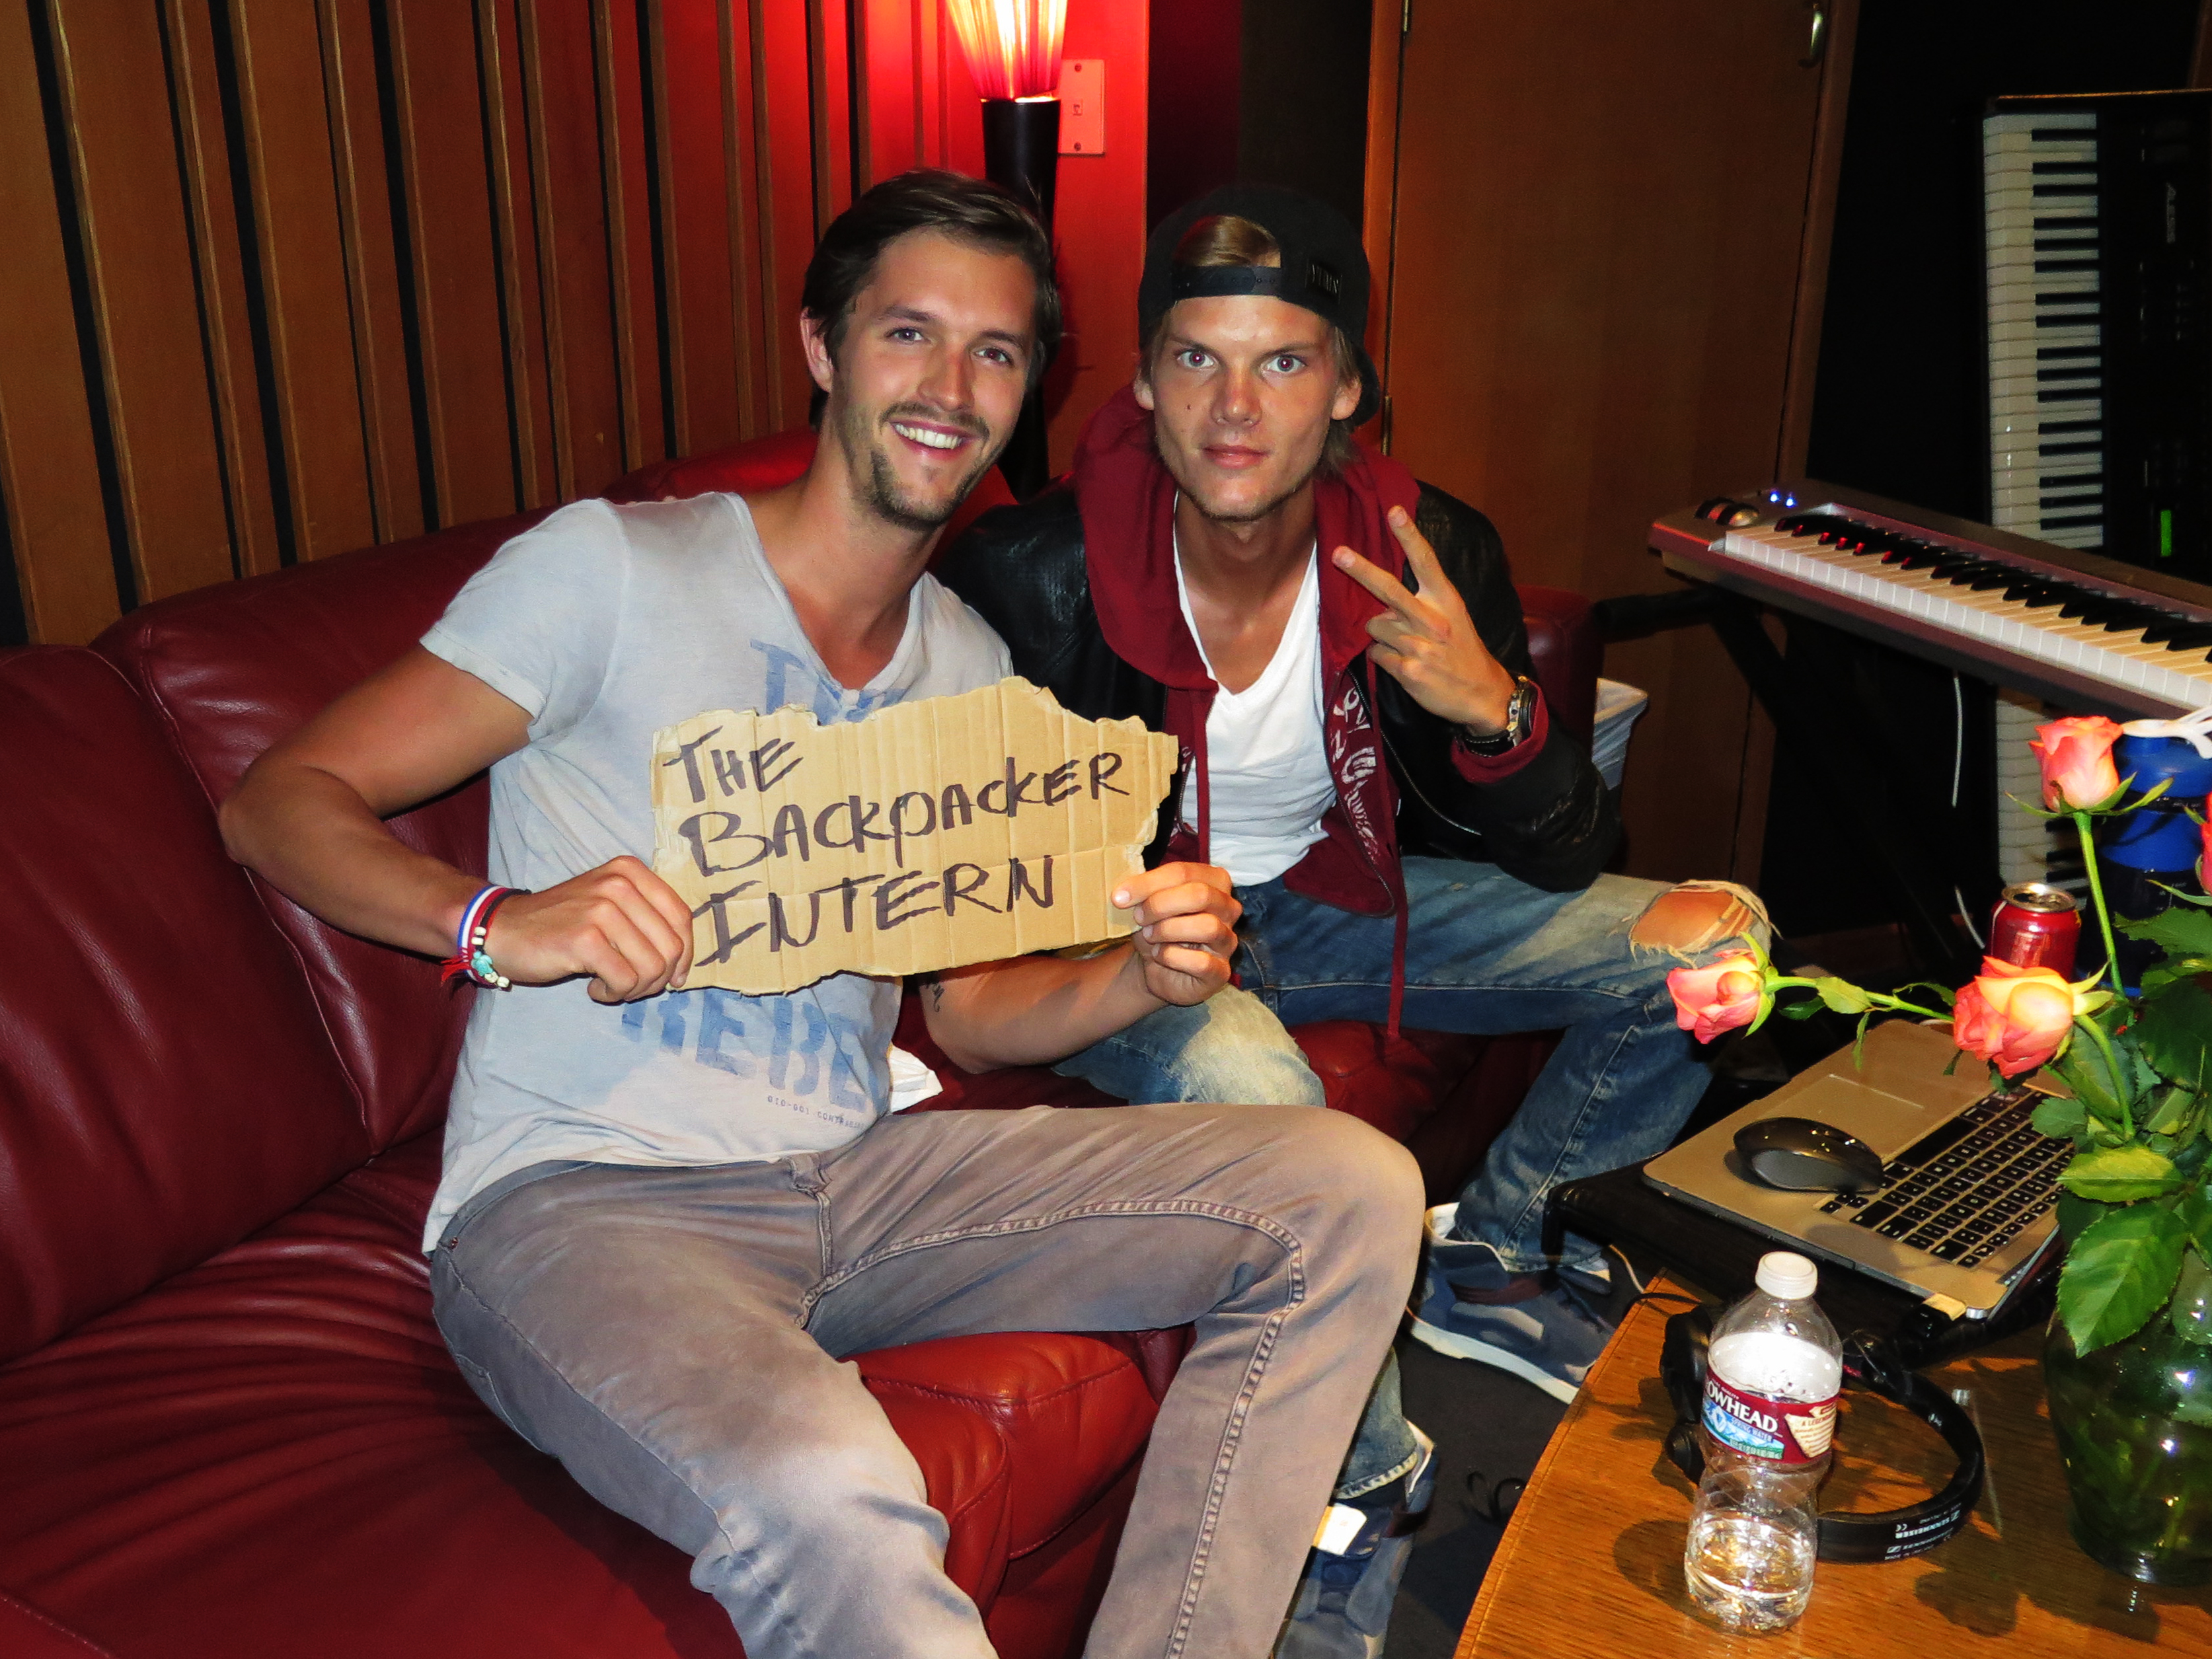 The Backpacker Intern with Avicii